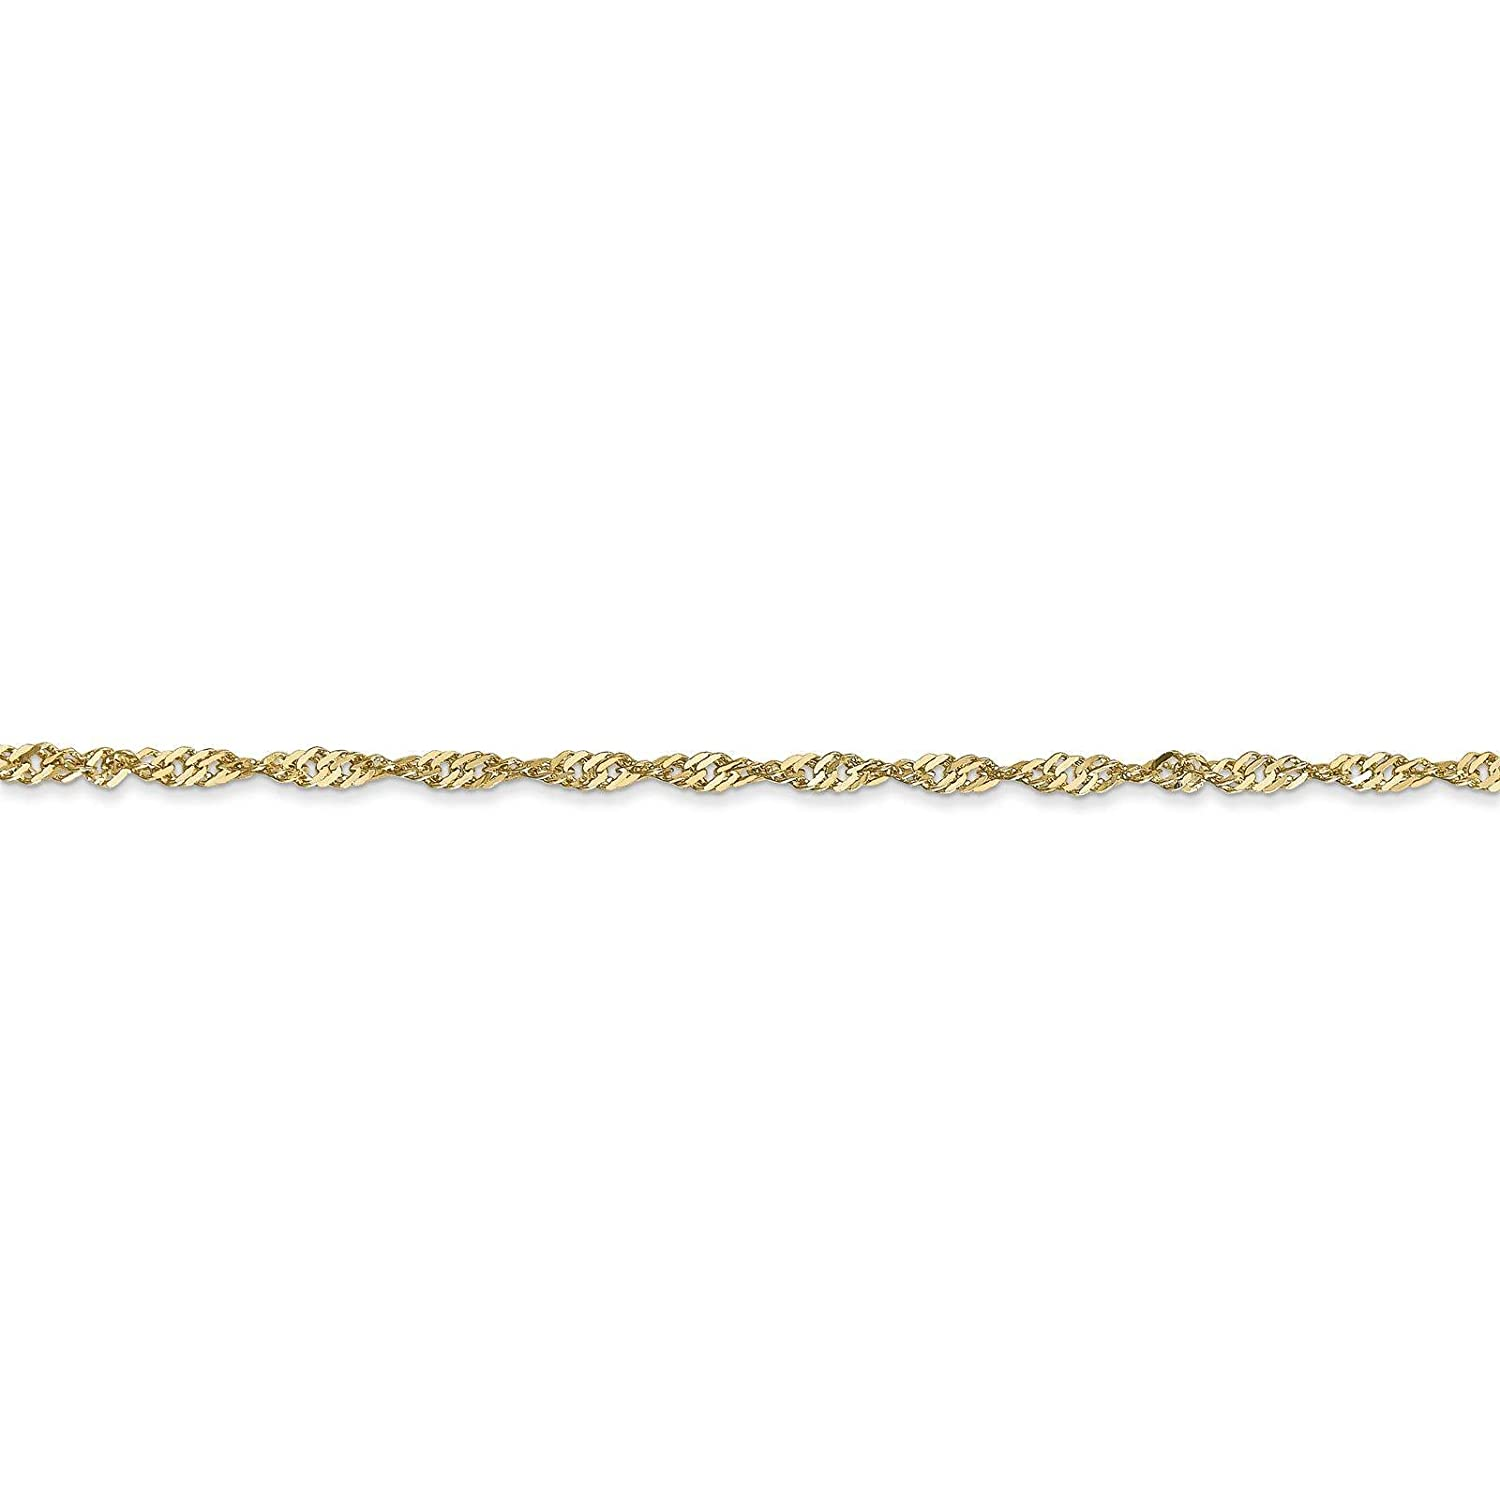 14k Yellow Gold 1.7mm Polished Singapore Chain Necklace Bracelet Anklet 7-30